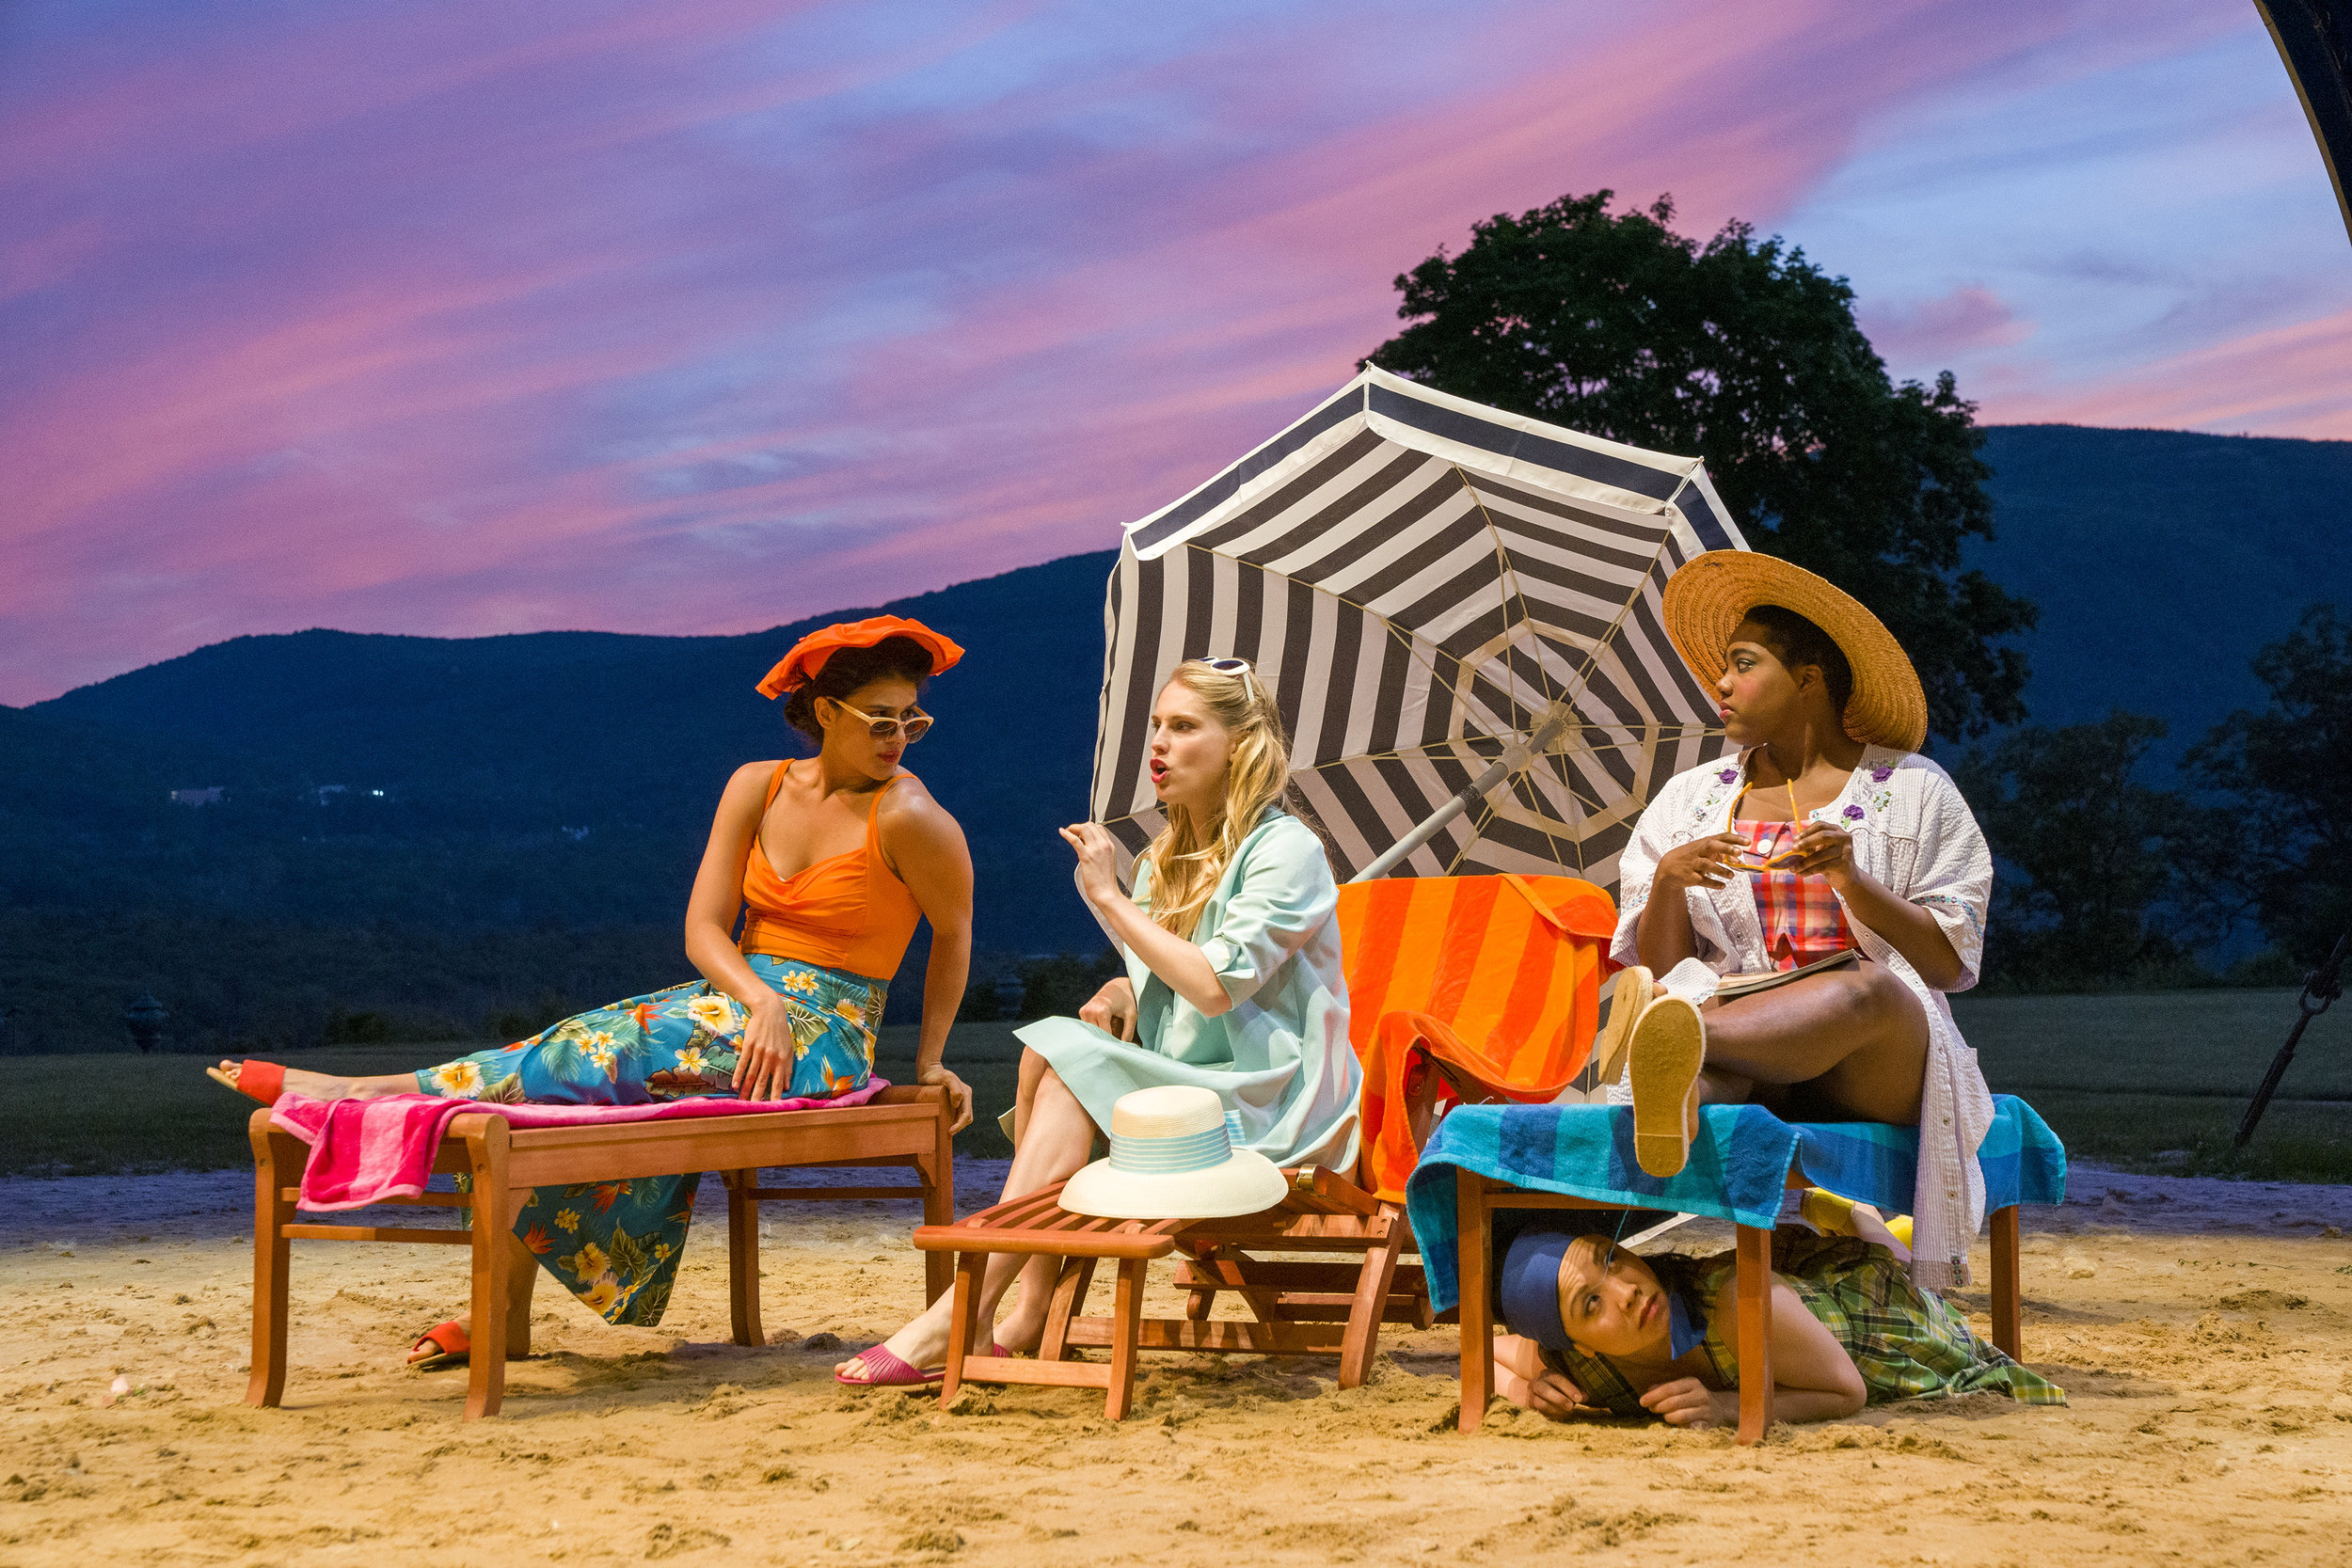 Much Ado About Nothing  By William Shakespeare  Directed by May Adrales  Hudson Valley Shakespeare Festival  2019